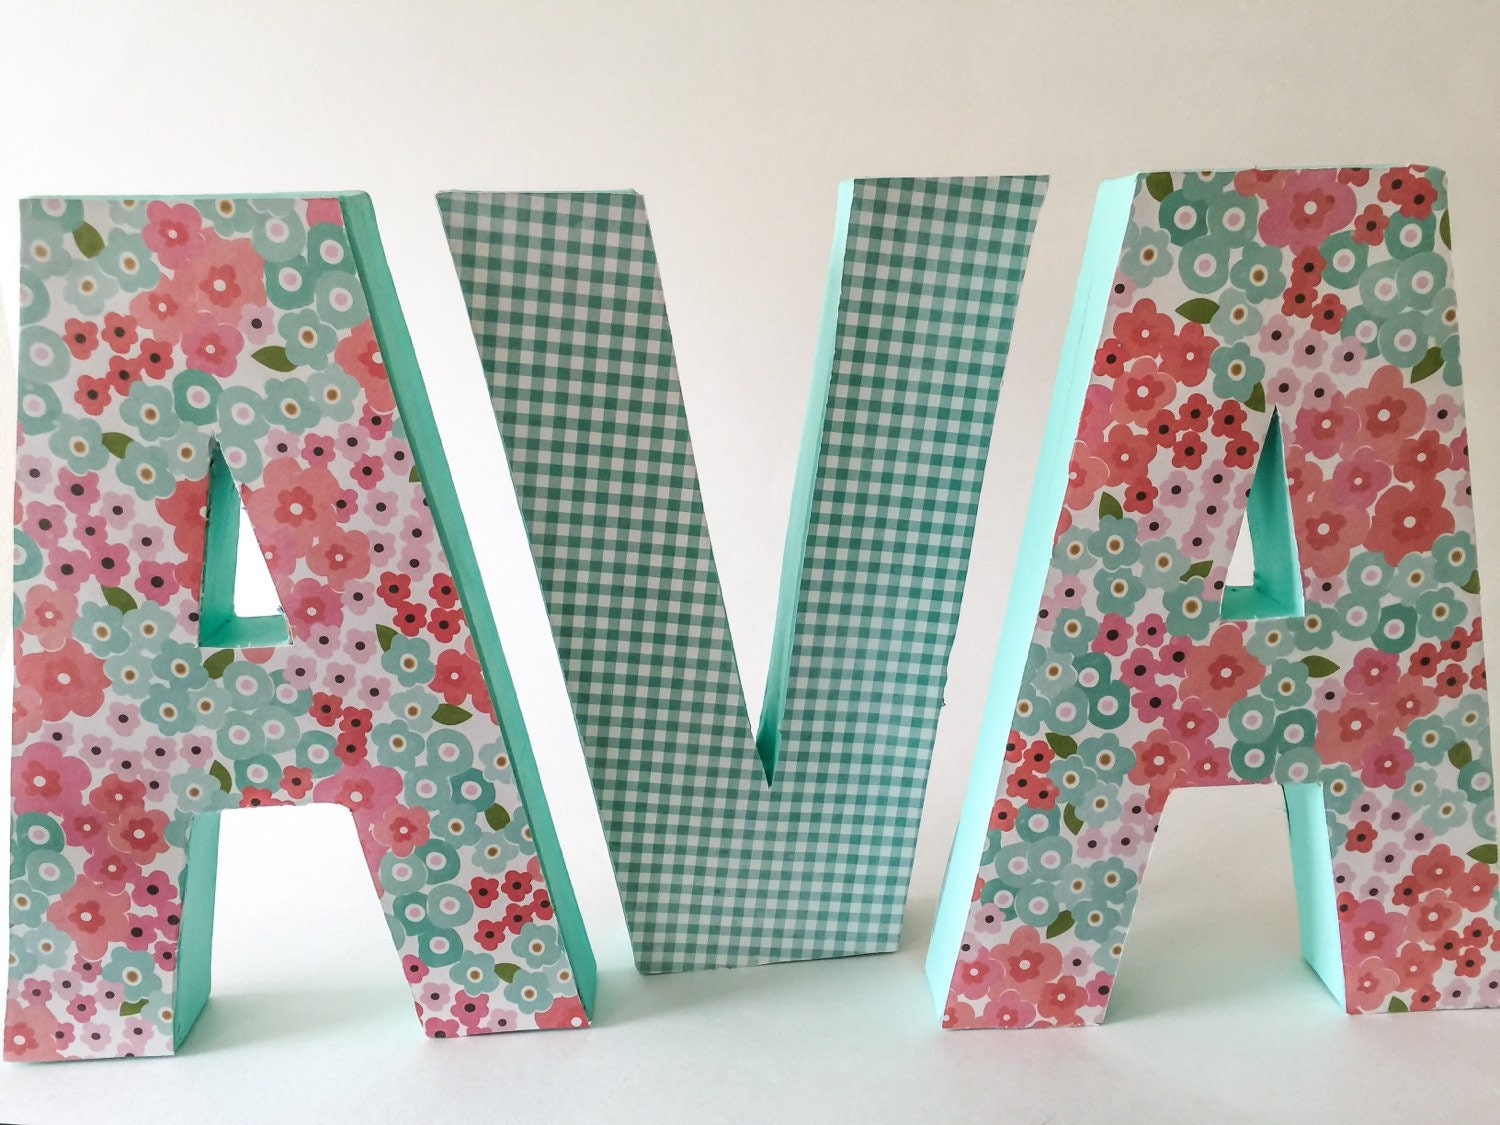 covering letters with scrapbook paper Beautiful, bright, printable scrapbook paper in a variety of school themed designs - great for covering notebooks, perking up folders and other crafty projects.